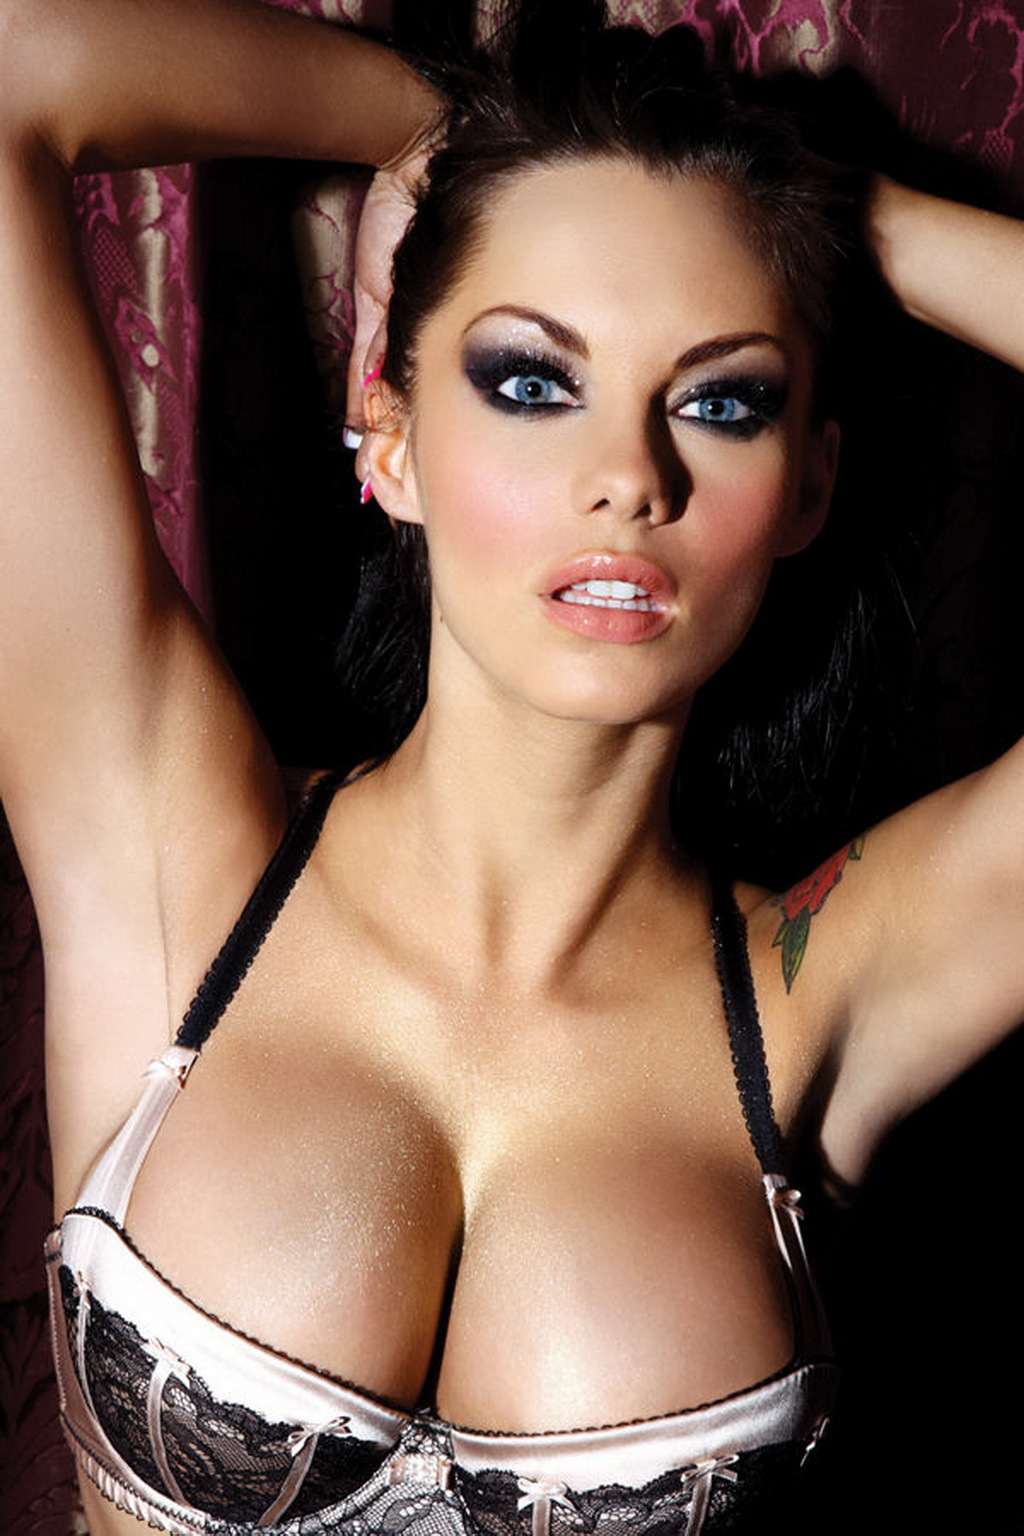 Thanks Nude jessica jane clement nice phrase